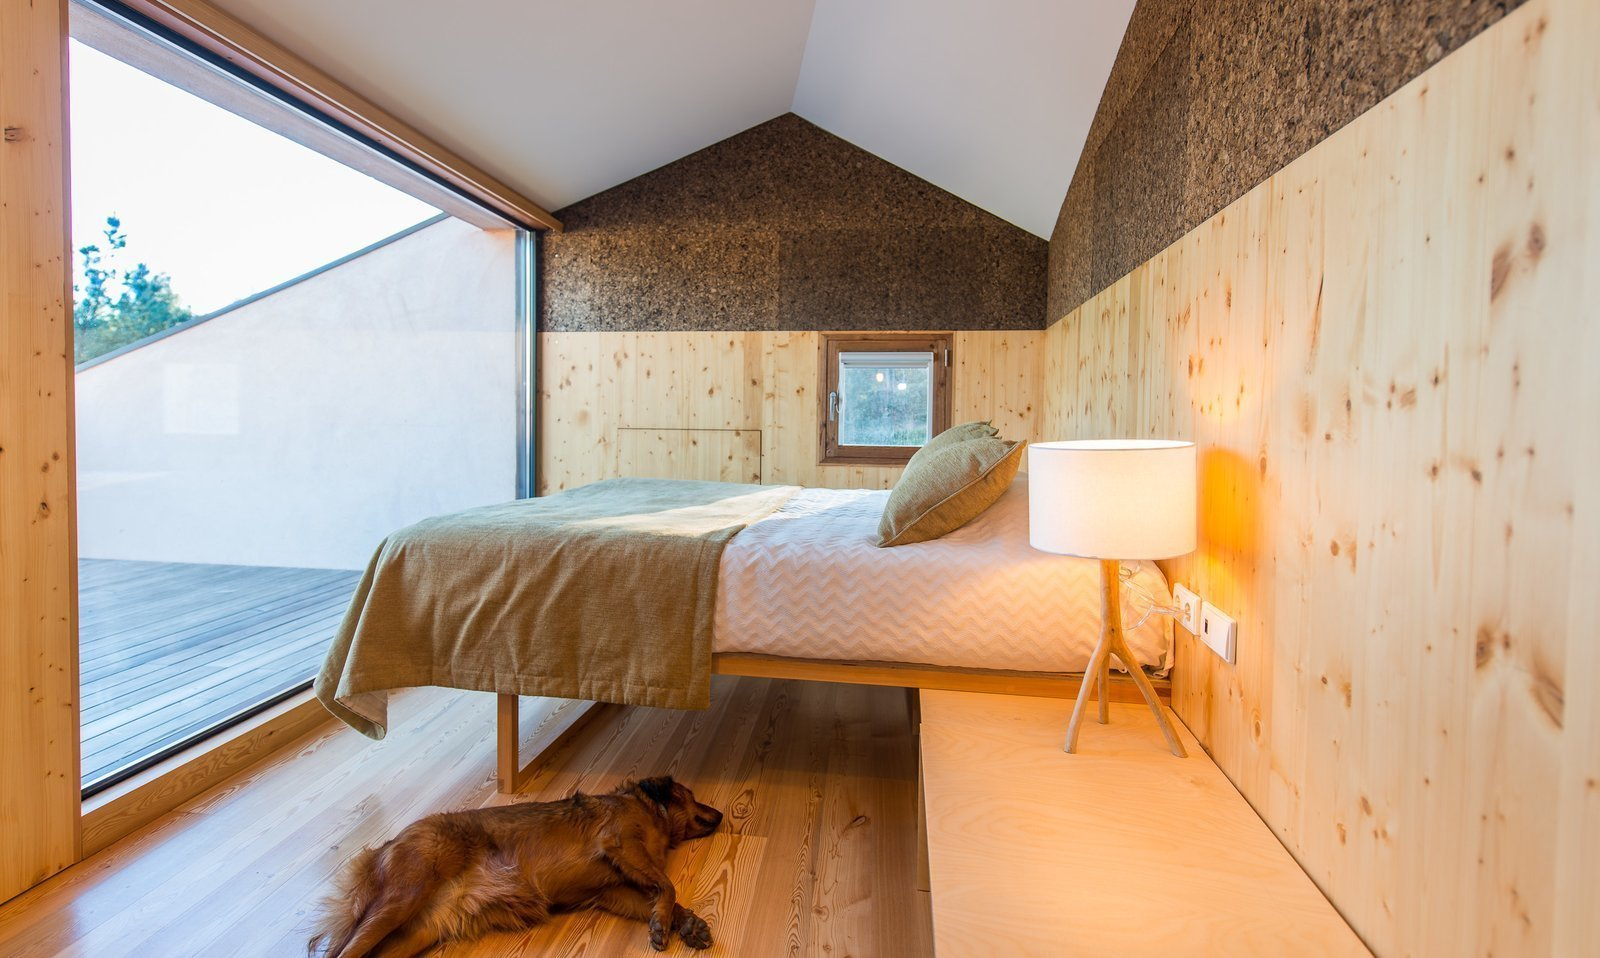 Bedroom, Bed, Lamps, Table Lighting, and Medium Hardwood Floor  Photo 3 of 16 in Stay in a Tiny, Eco-Friendly House in a Portuguese Schist Village